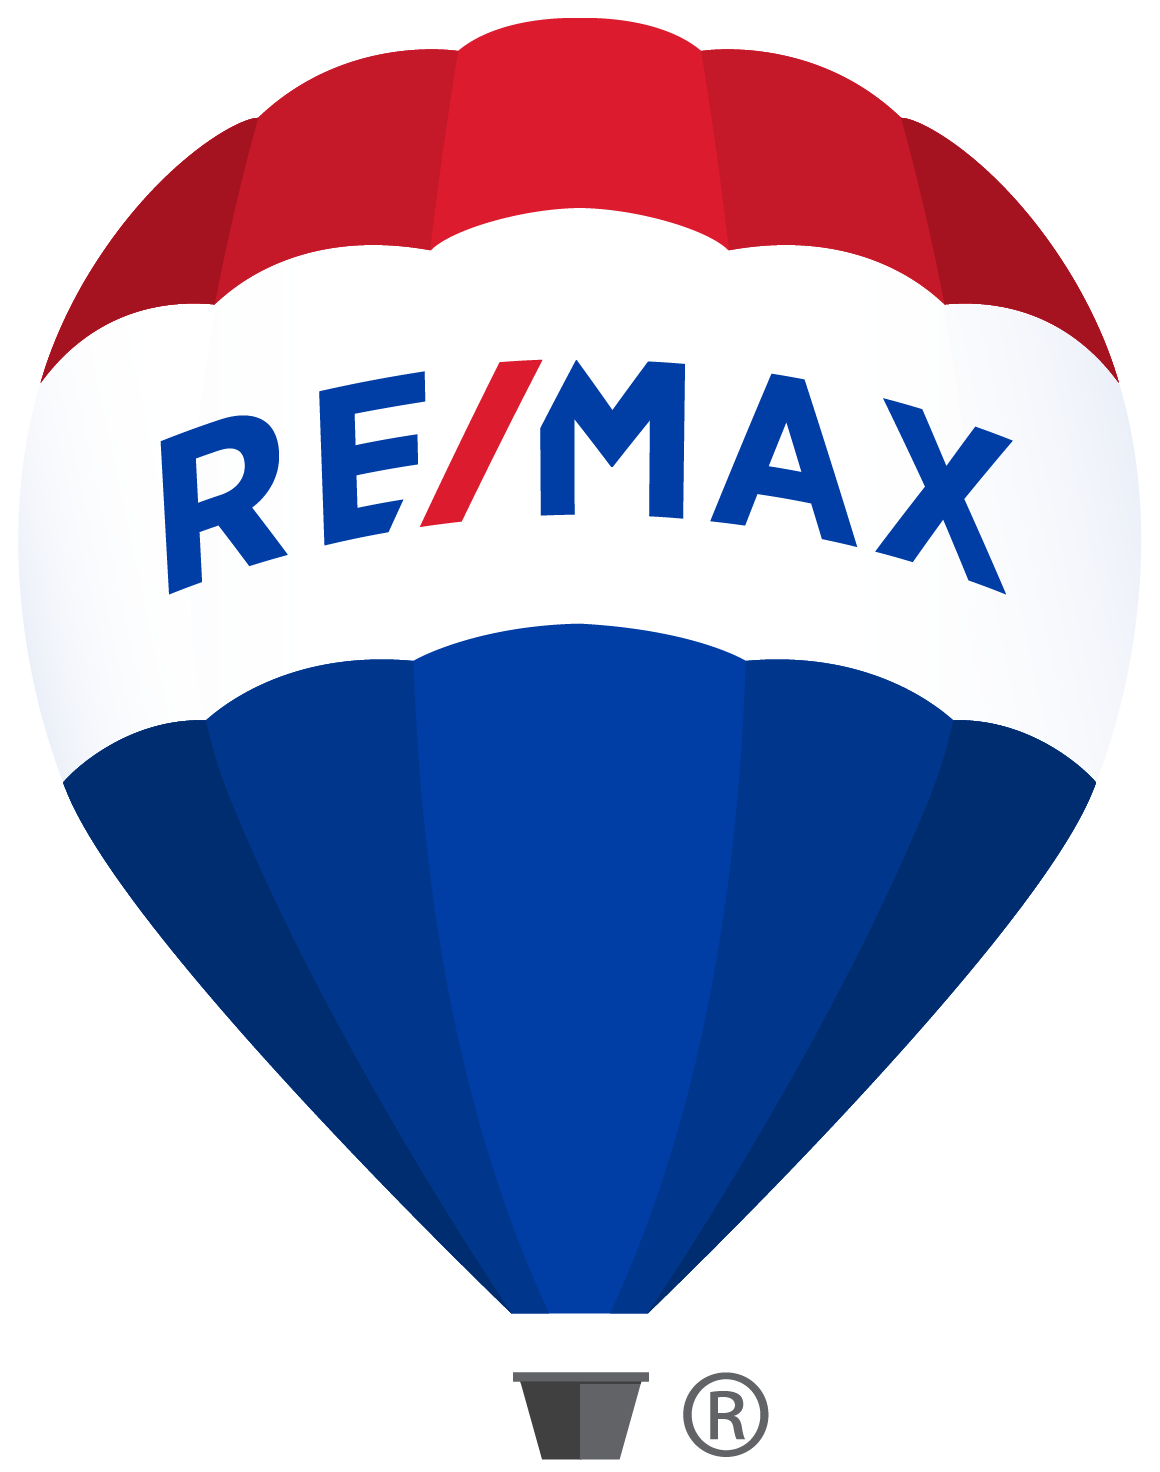 RE/MAX balloon .png web transparent